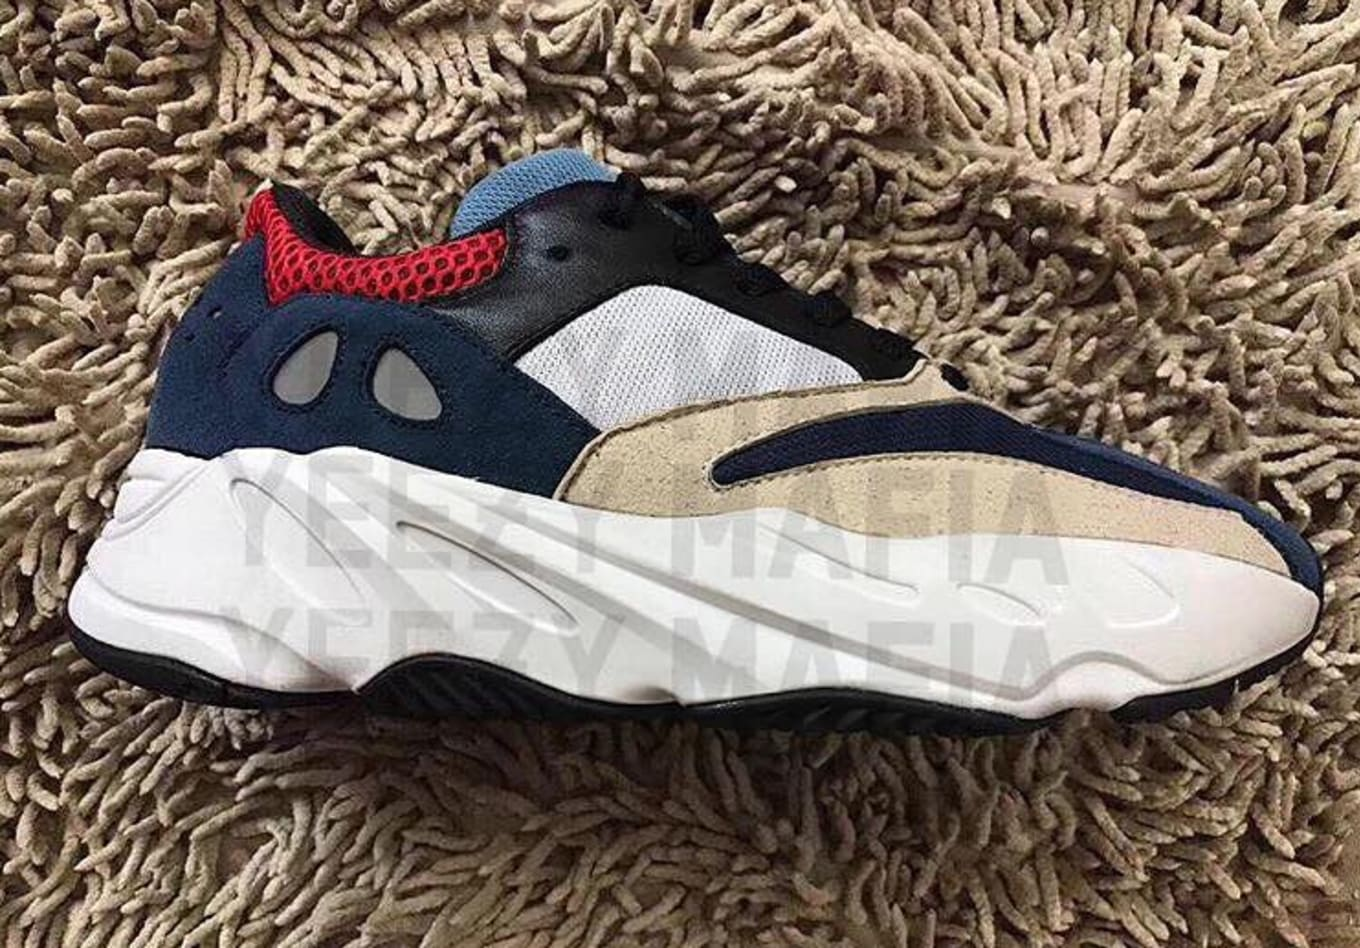 cf5771f78fb16 A new colorway of the Yeezy Boost 700 has surfaced.